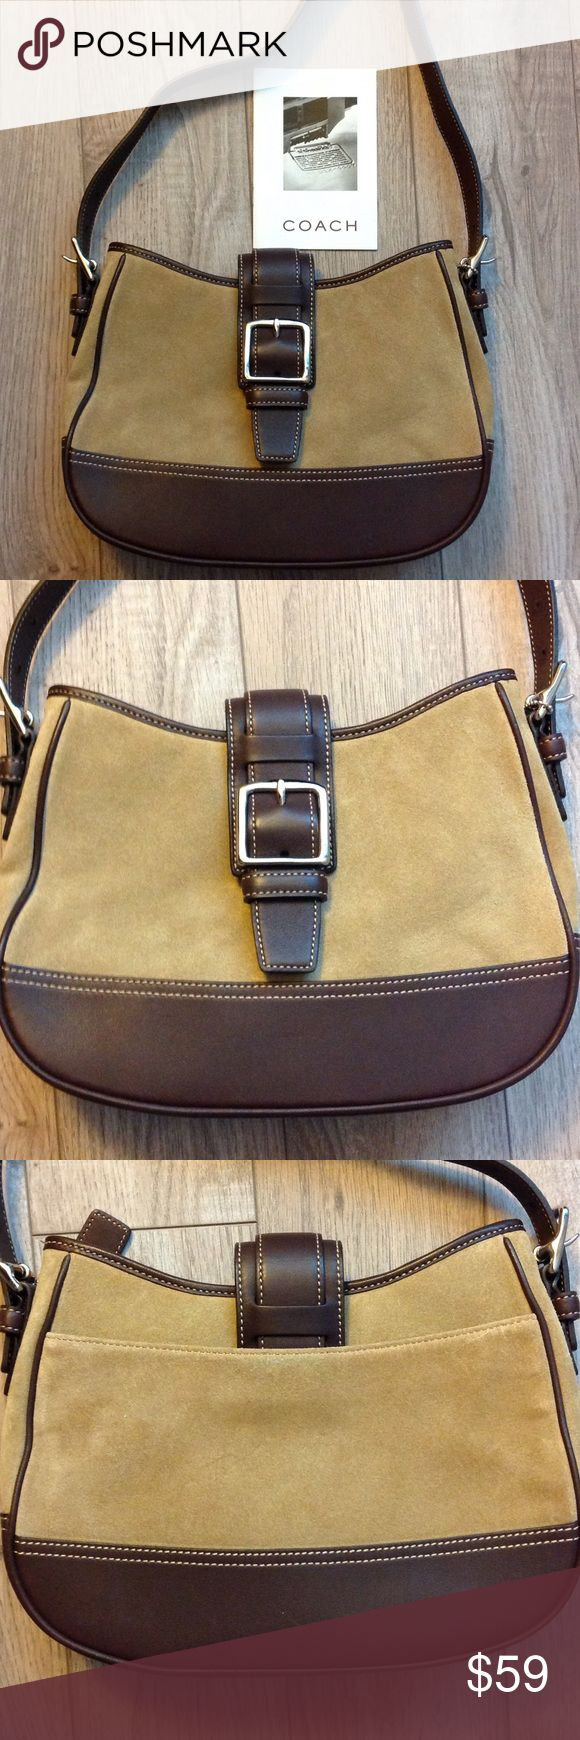 Tan suede coach bag Perfect condition tan suede and leather Coach bag. Coach Bags Hobos